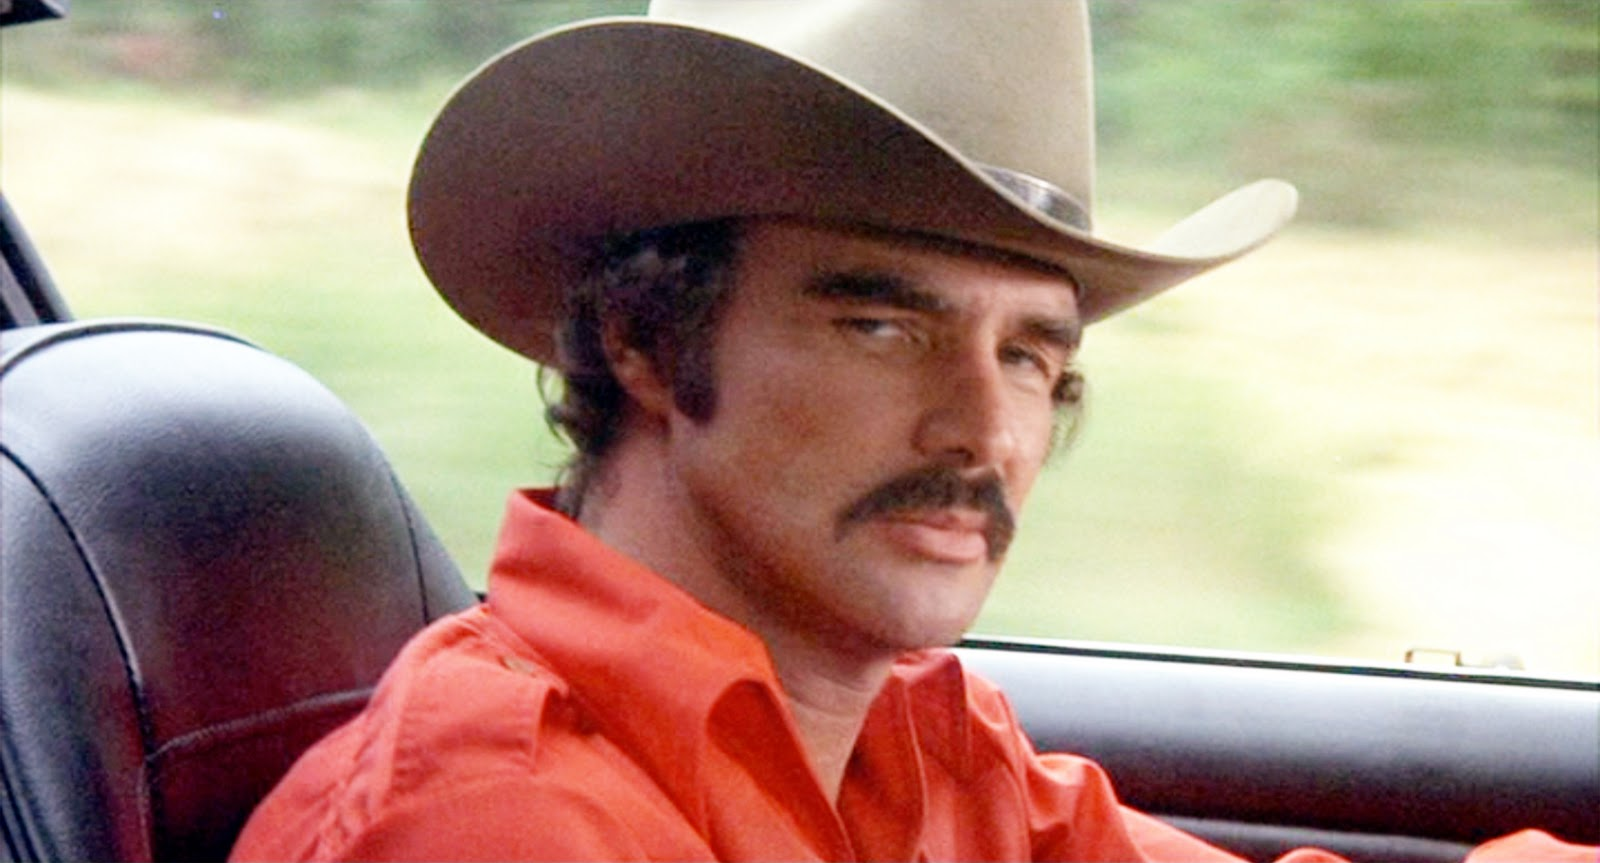 Burt Reynolds in 1977's Smokey and the Bandit....easily his biggest box office hit